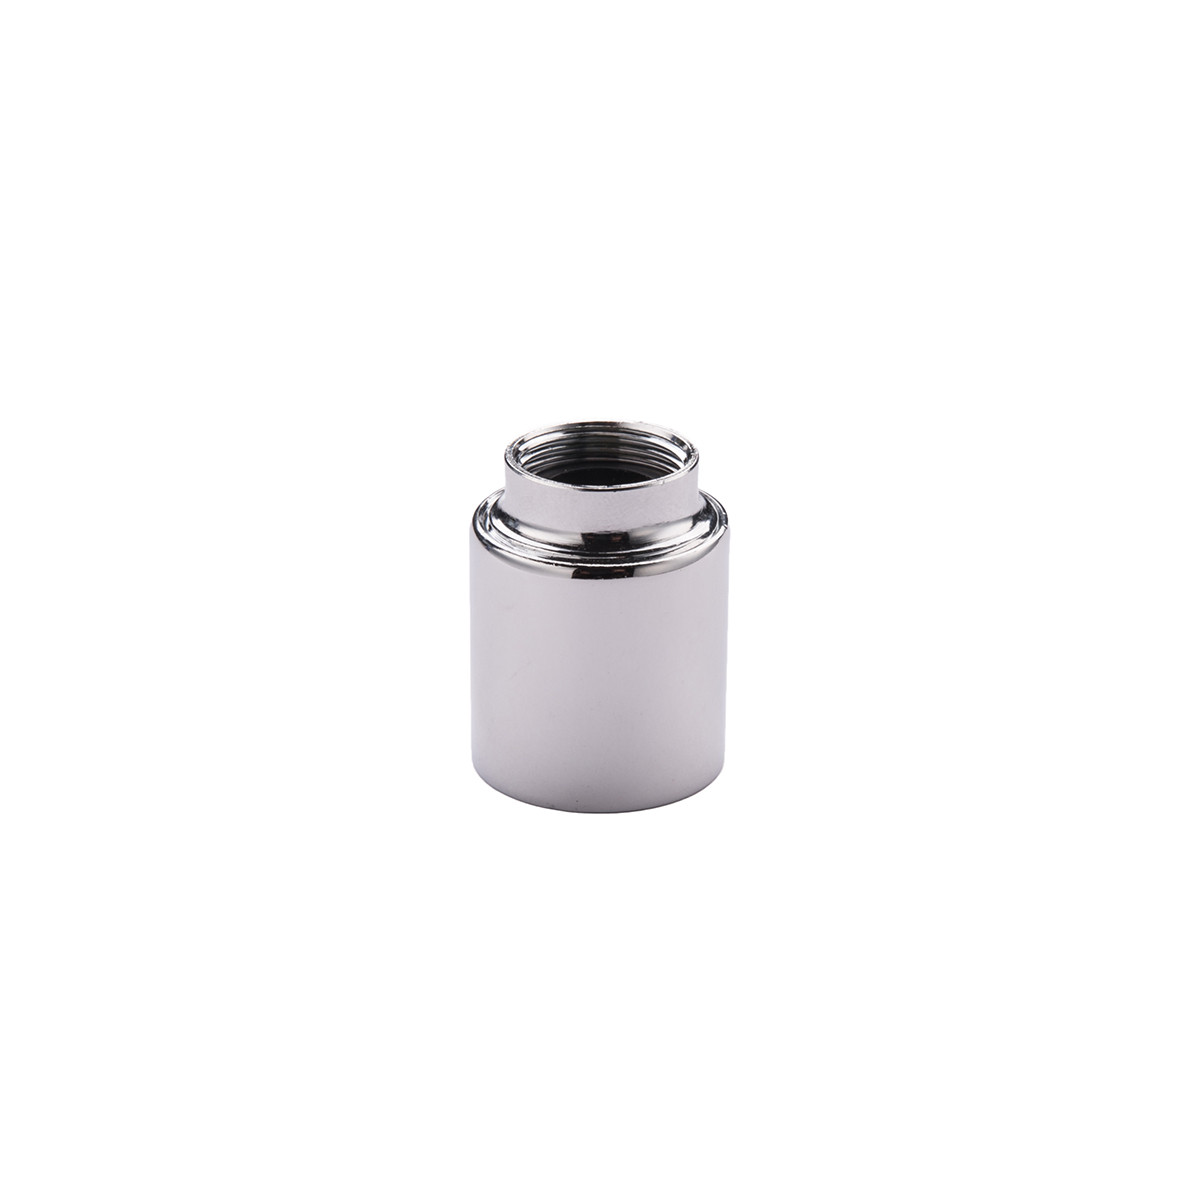 ADAPTERS for NON STANDARD TAP THREADS